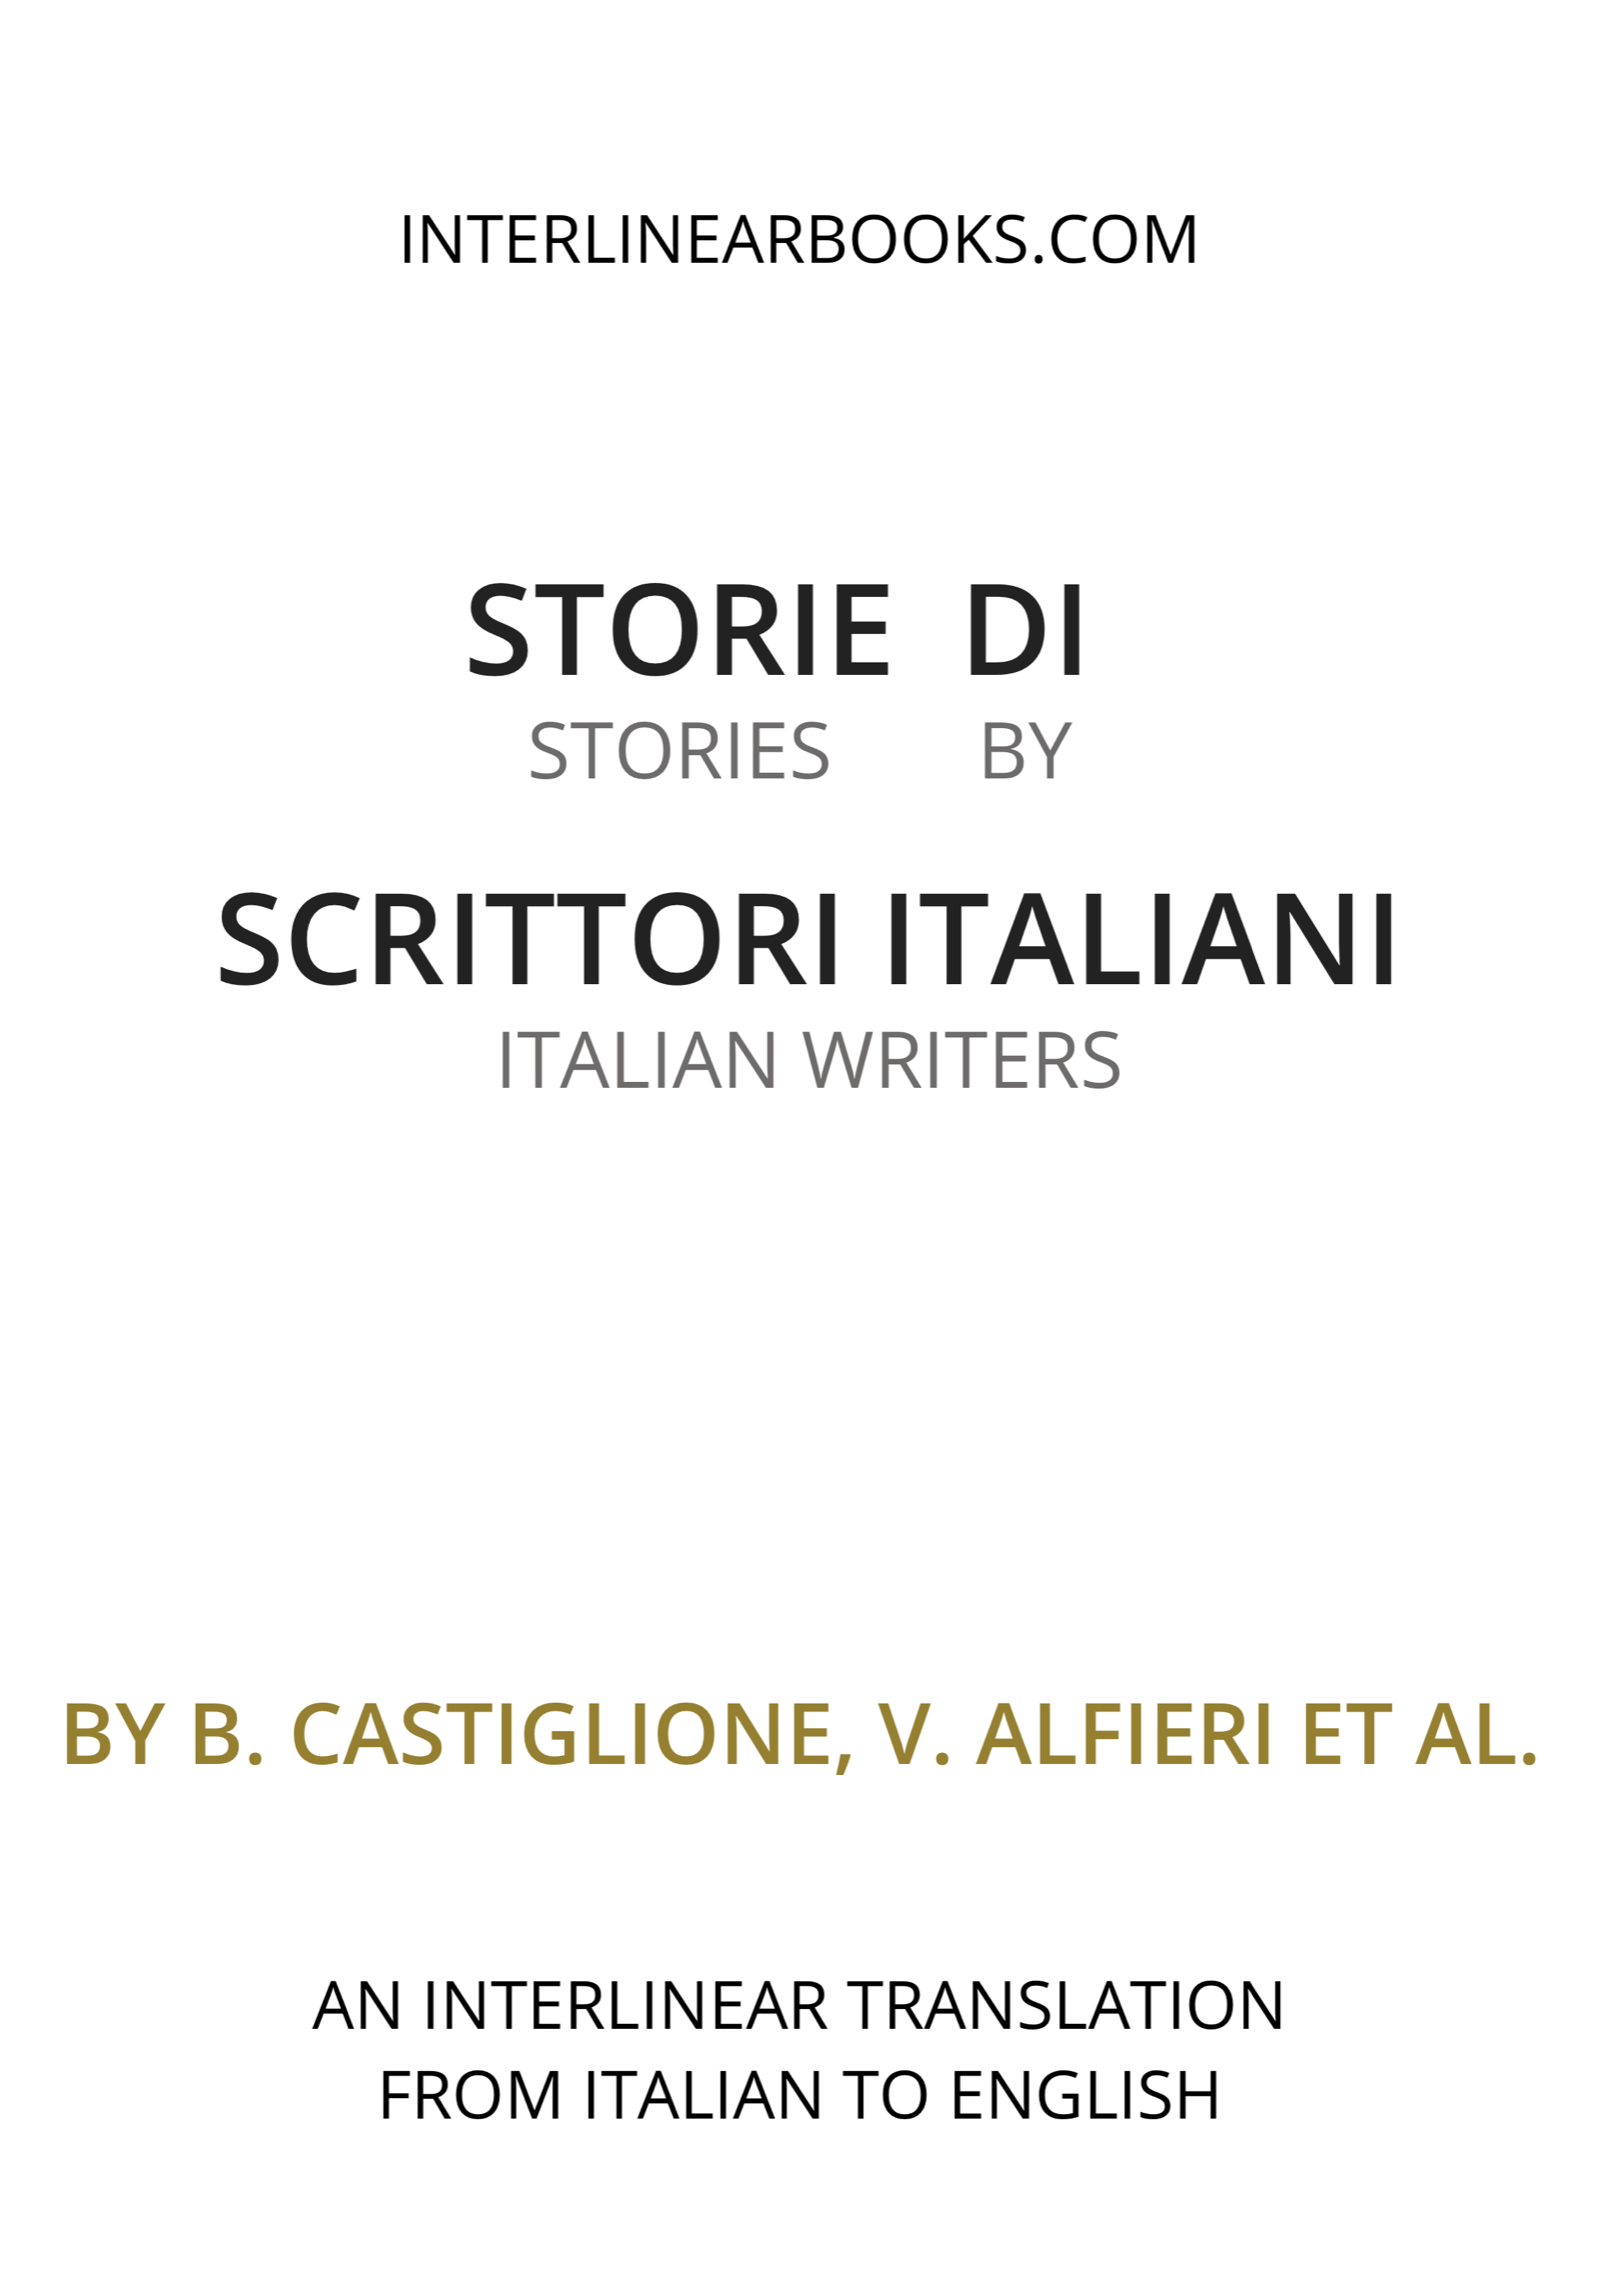 Italian book: Storie di scrittori italiani / Stories by Italian Writers